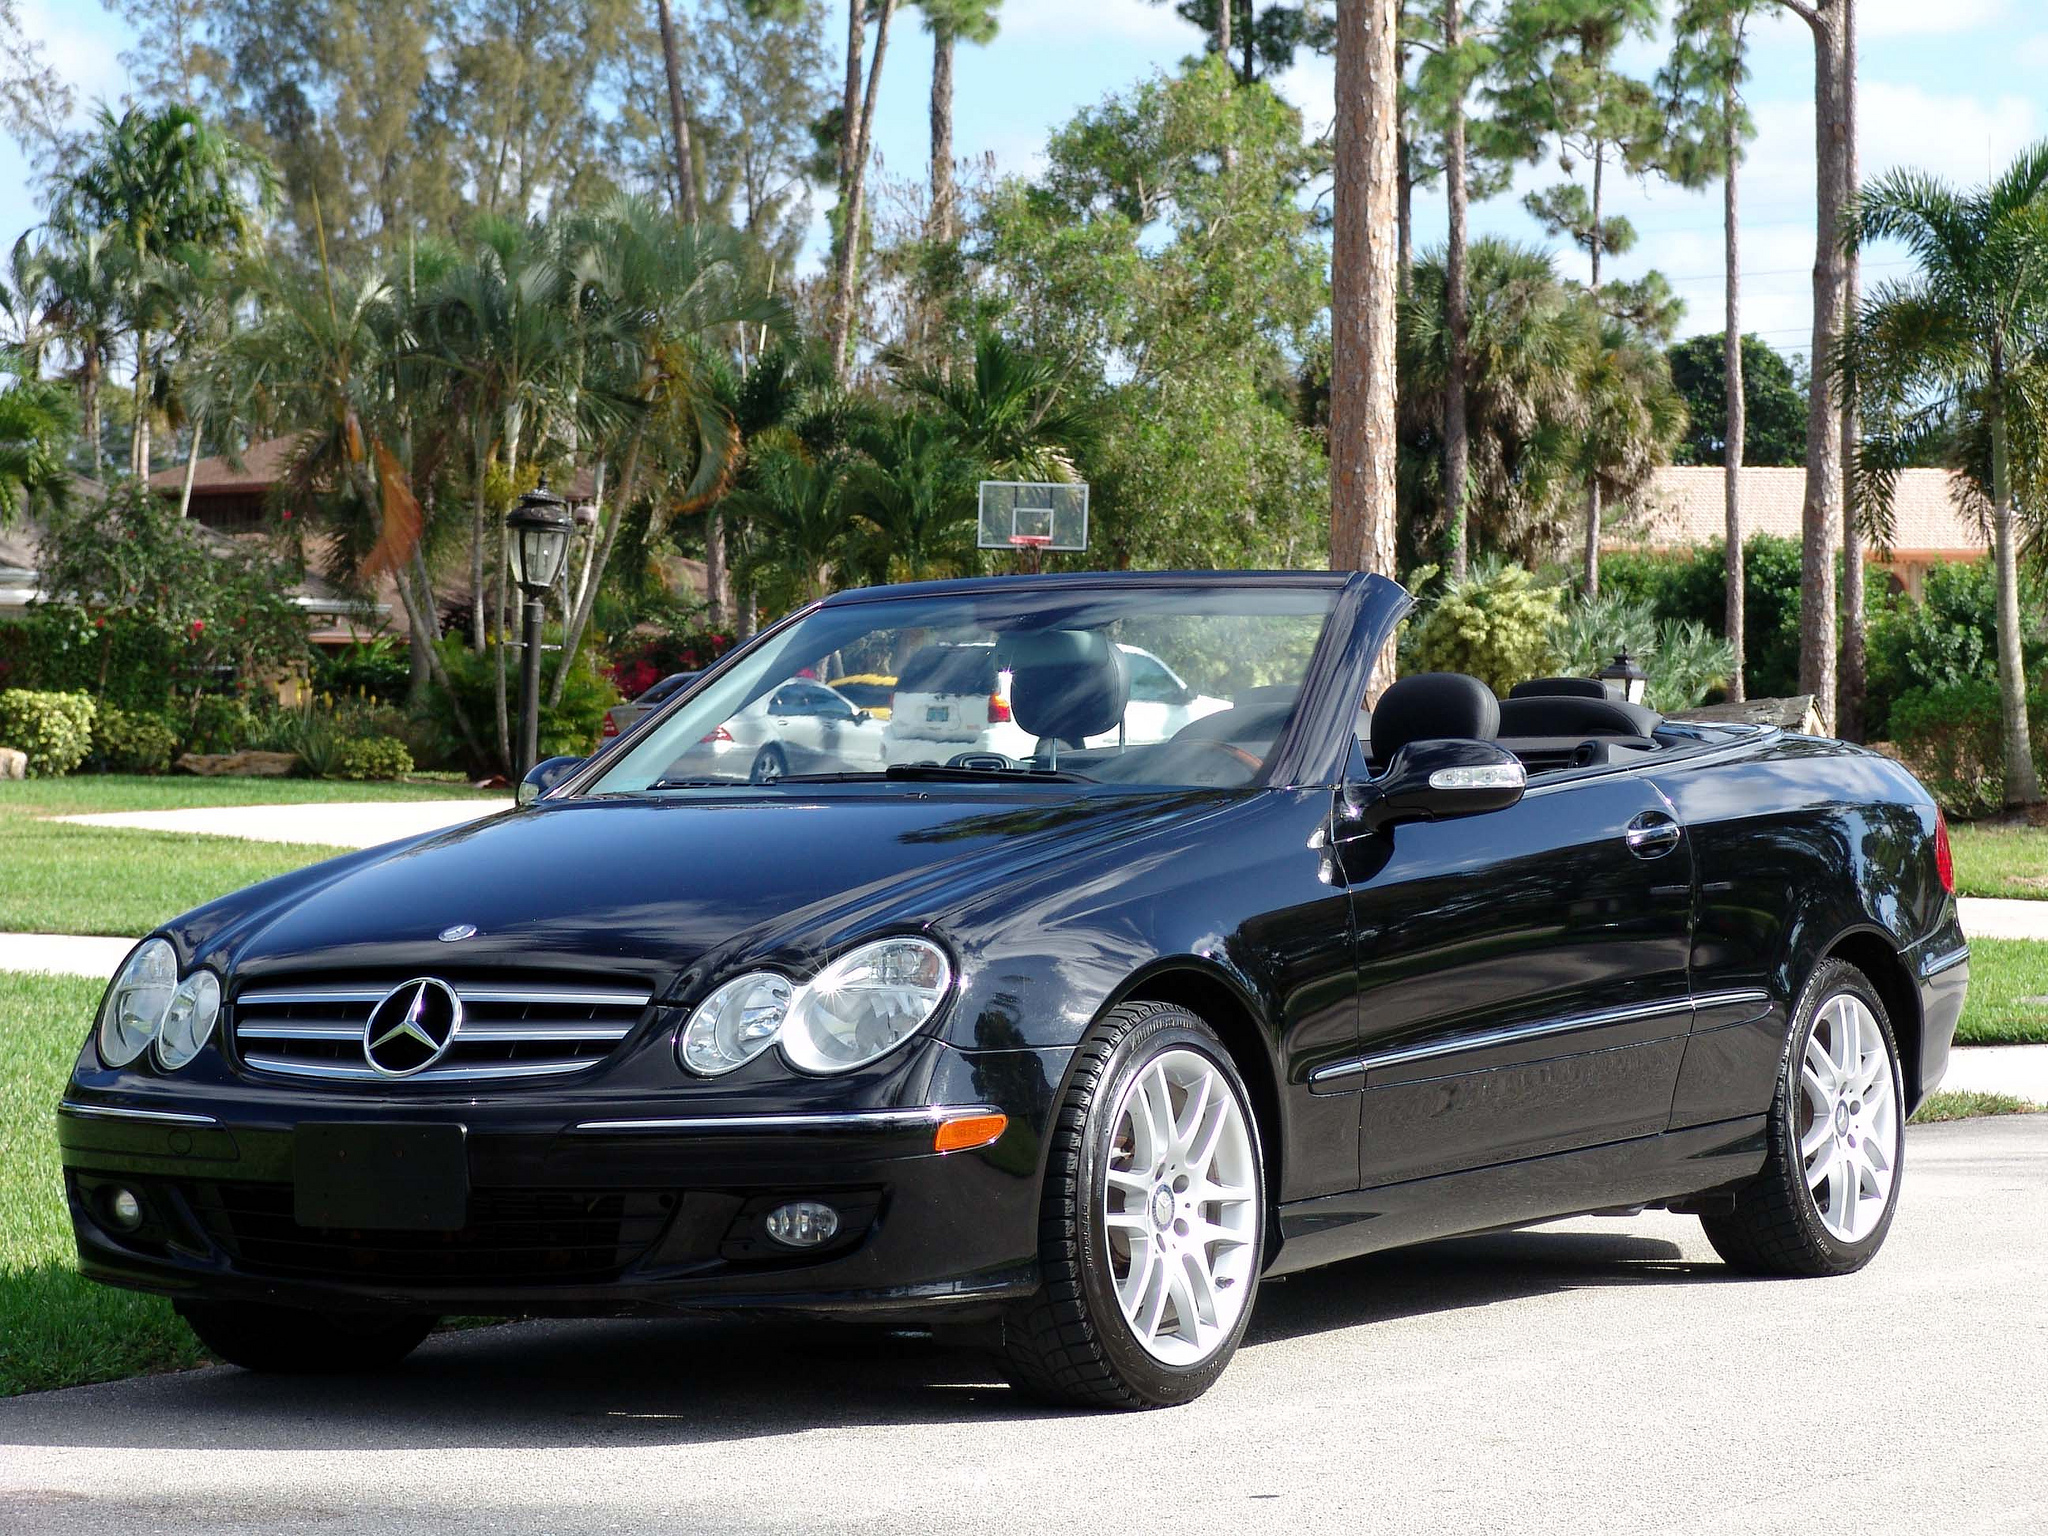 2003 mercedes benz clk 320 owners manual for Mercedes benz manuals